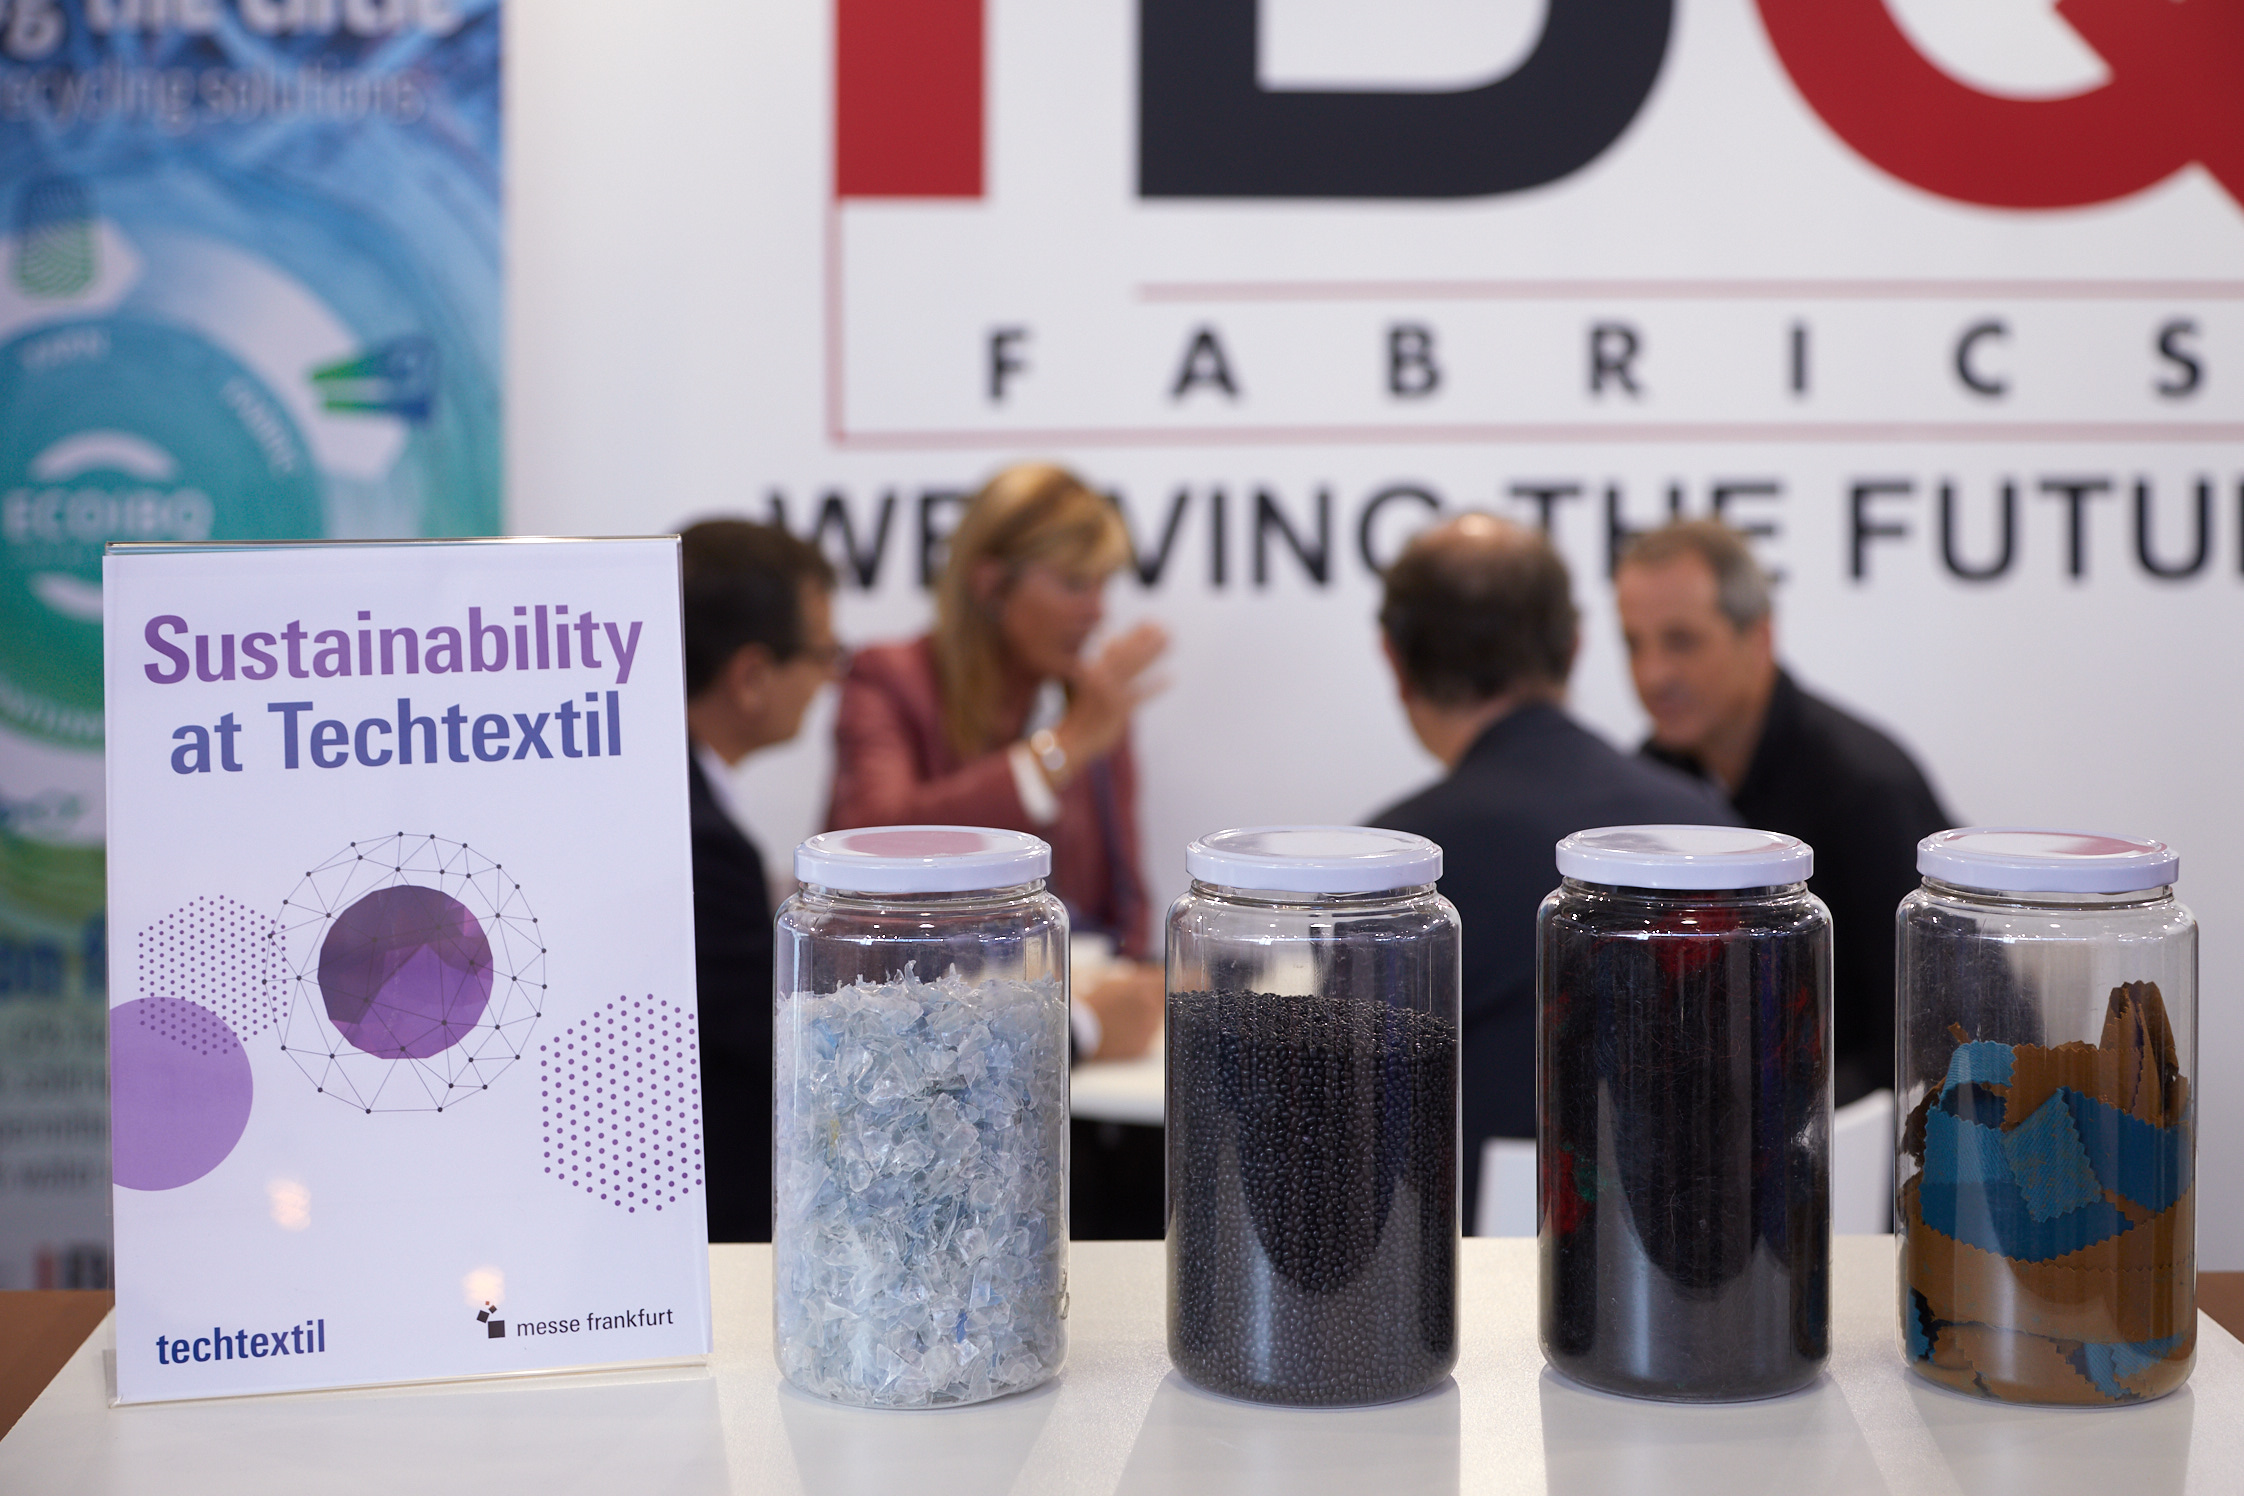 Oekotech: Sustainability: New Range of Fabrics with Recycled Polyester, Organic Cotton and Recycled Polyamide